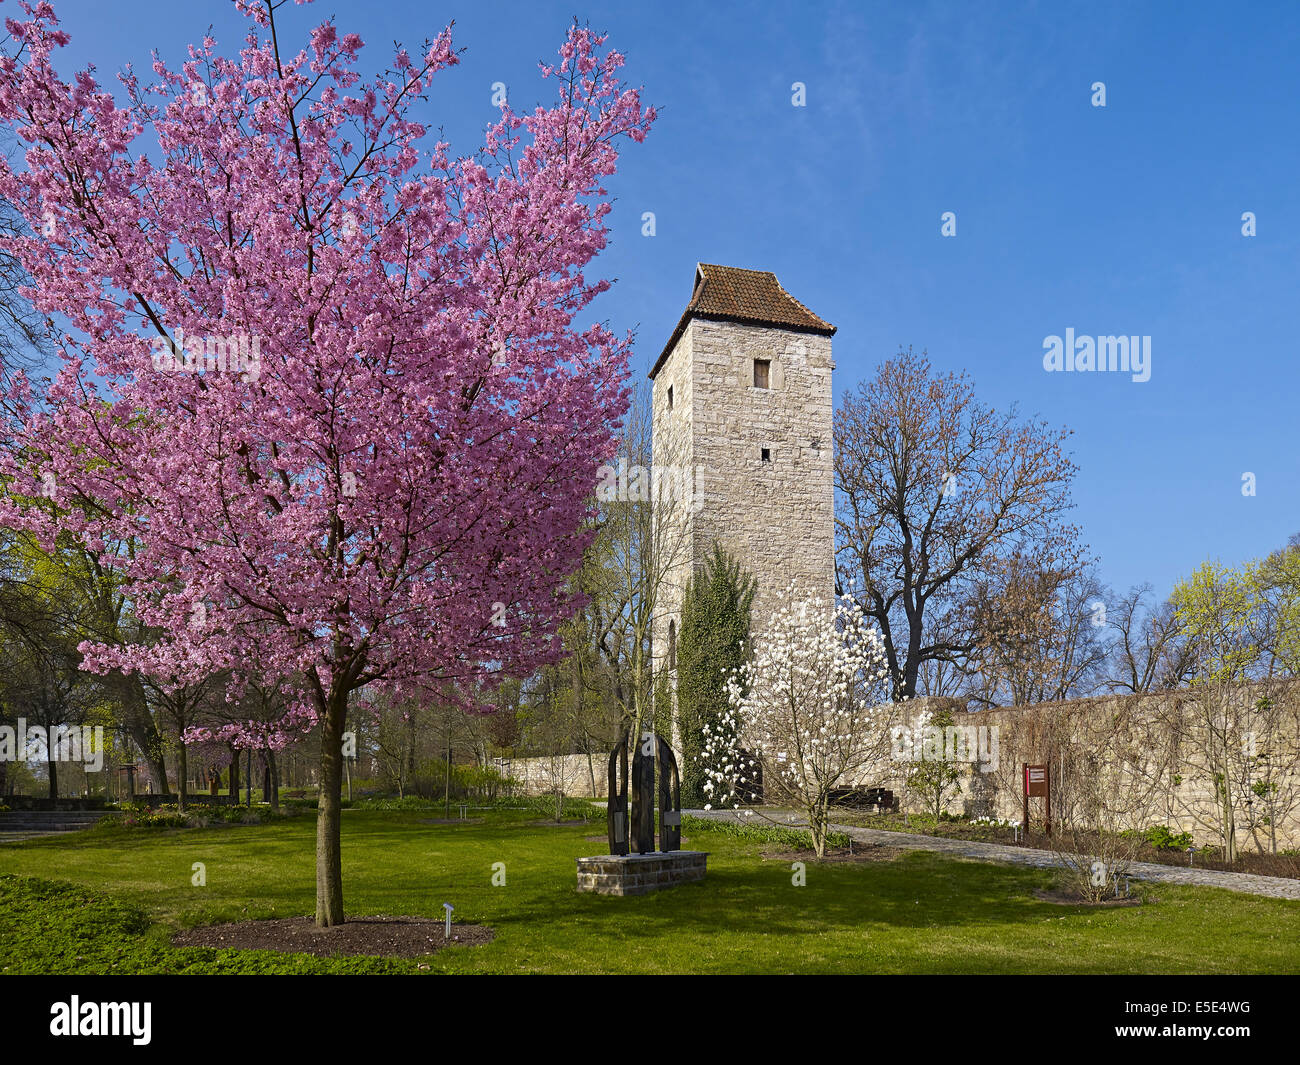 Arboretum with north tower of the town wall  in Bad Langensalza, Germany Stock Photo